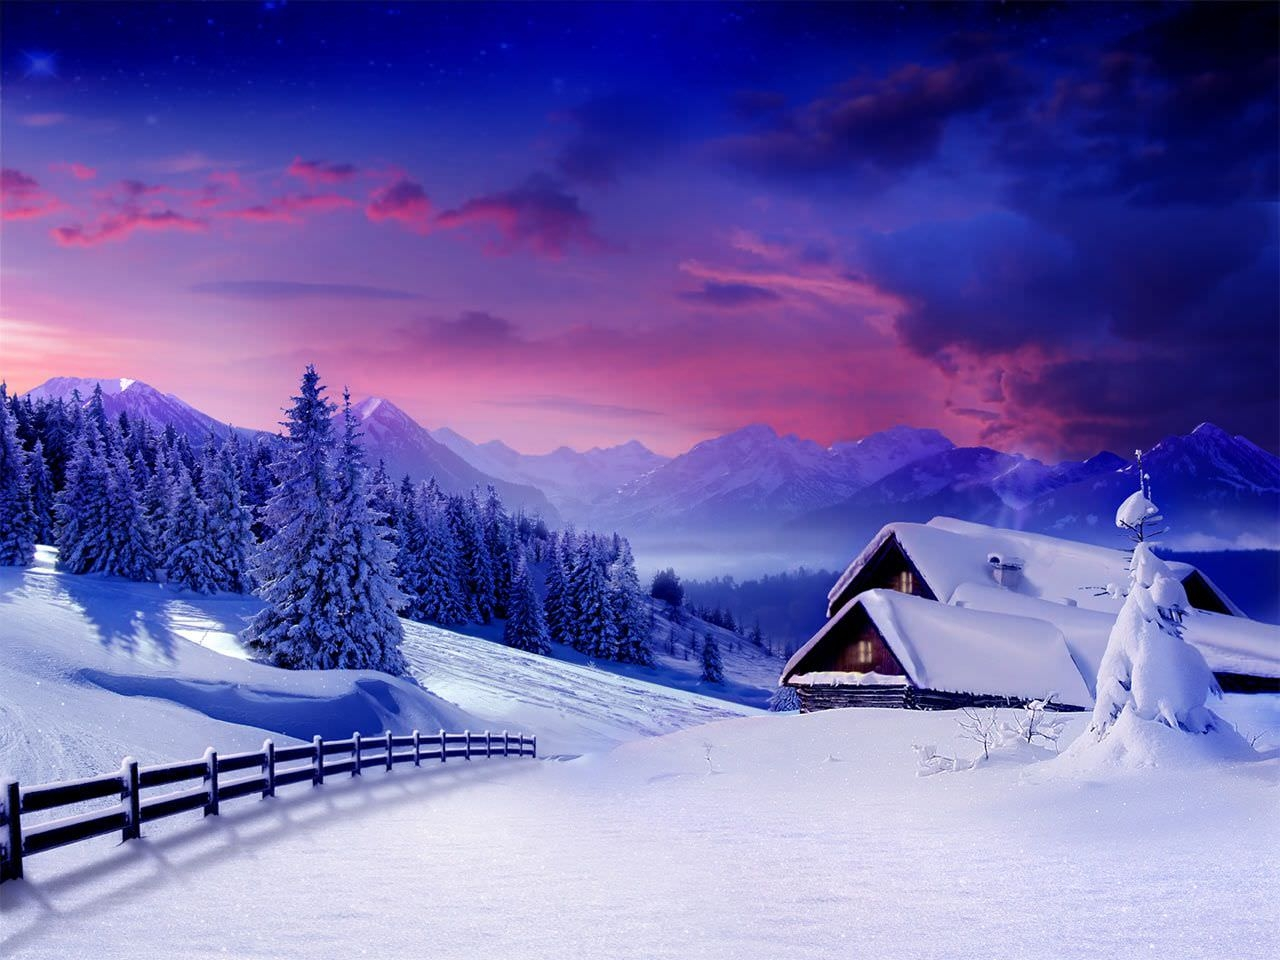 hq winter snow backgrounds